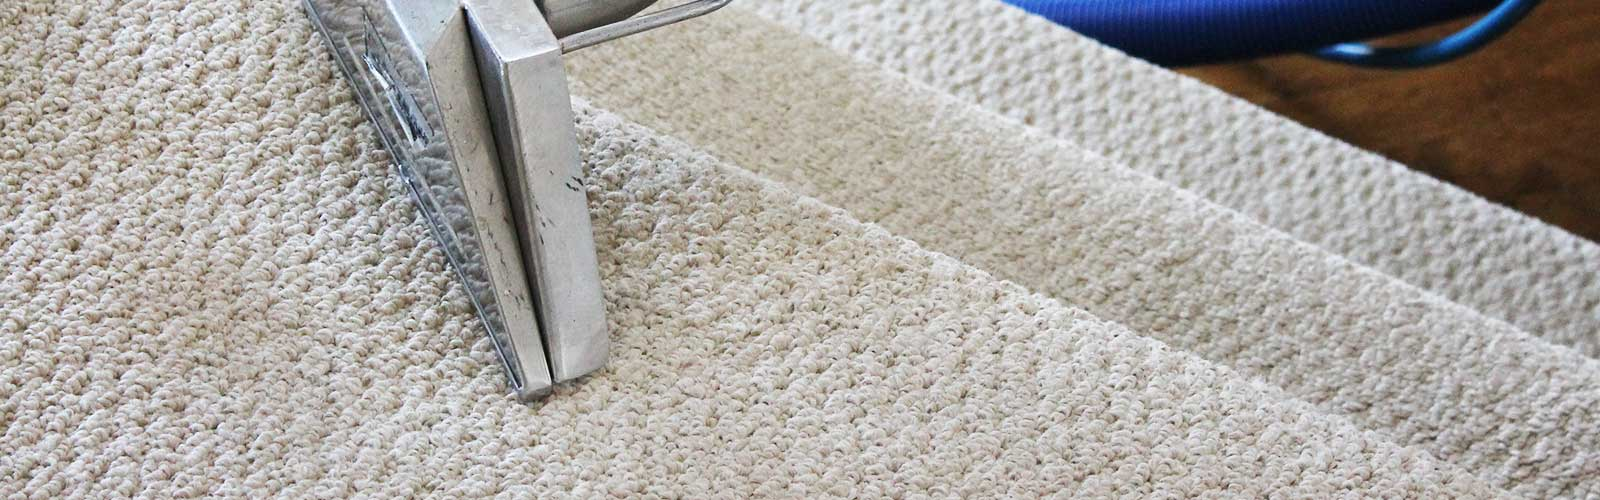 High traffic commercial carpet cleaning